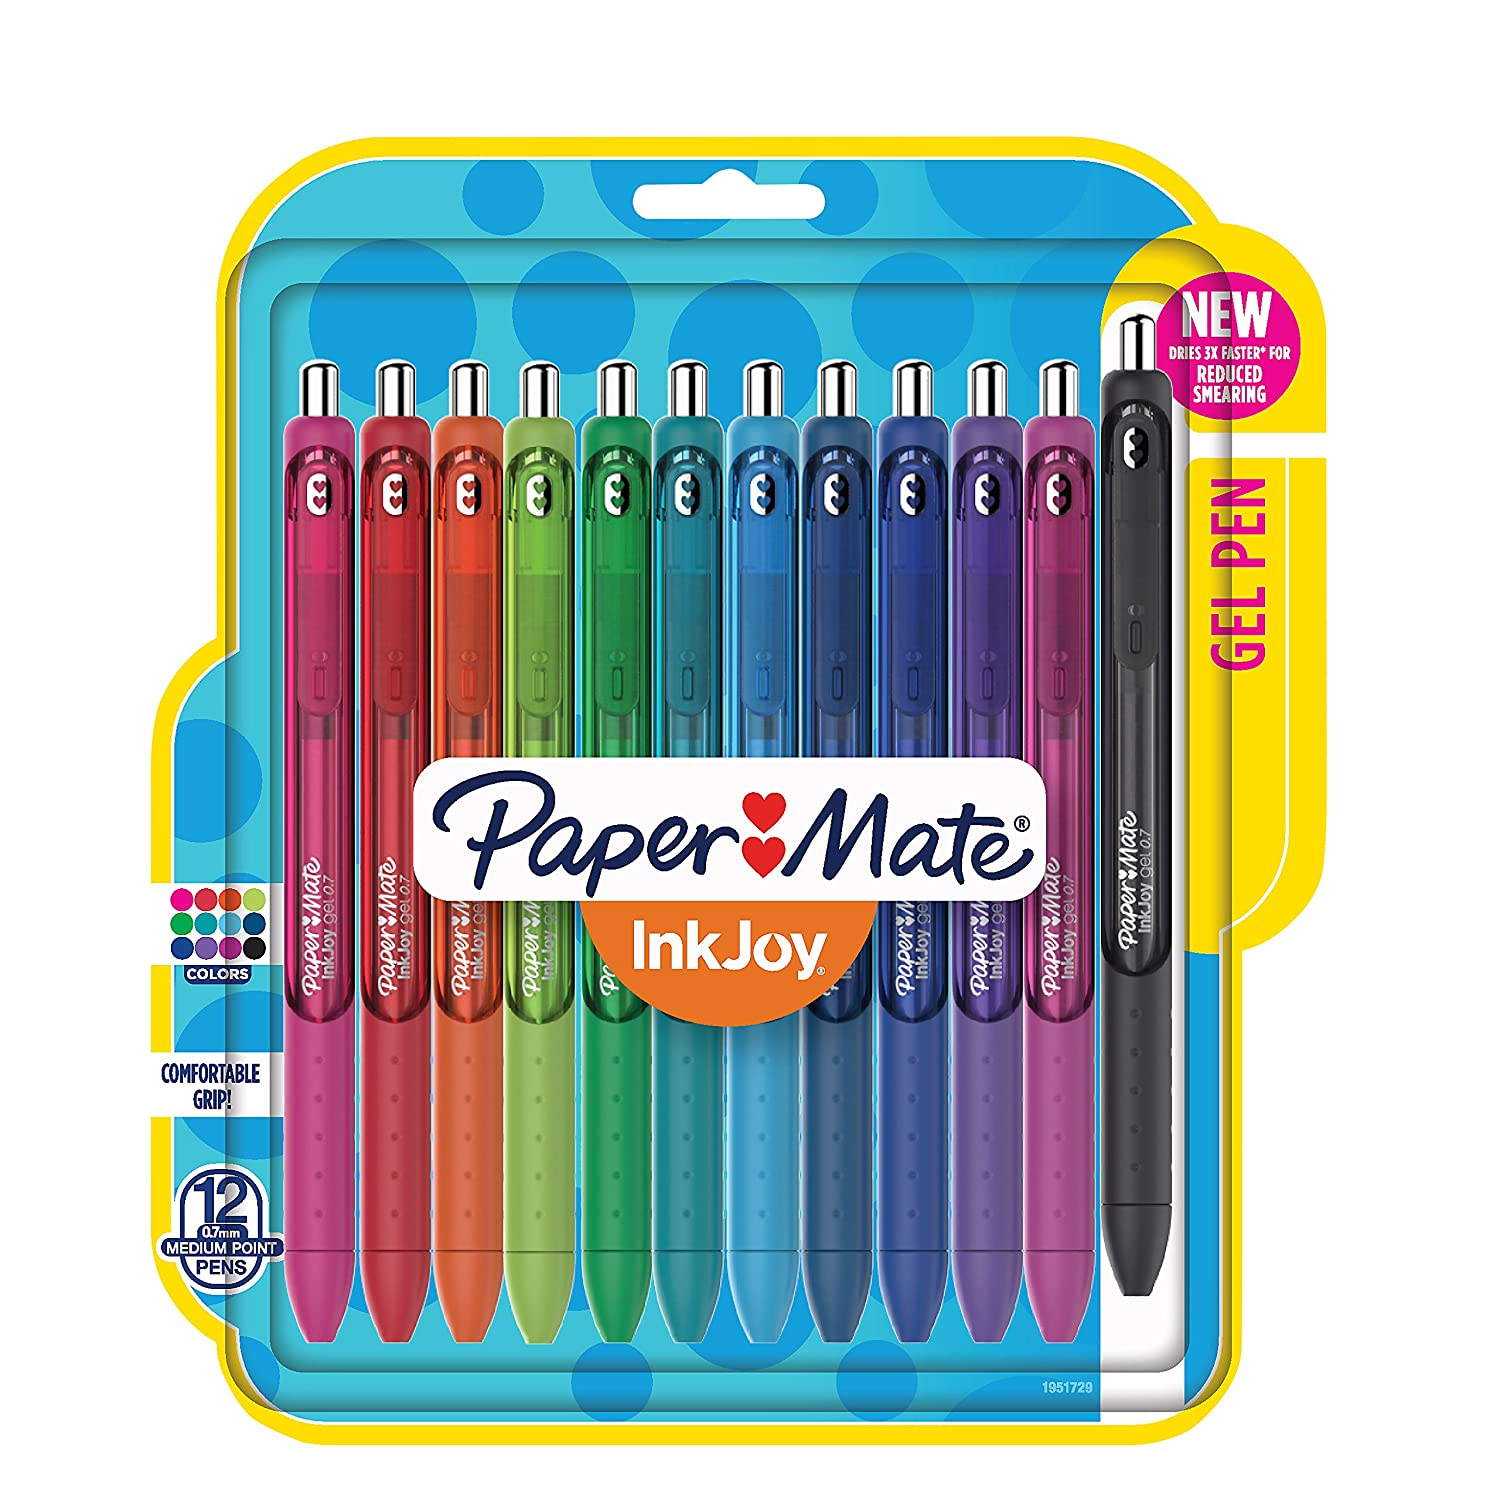 Paper Mate InkJoy Gel Pens, Medium Point, Assorted Colors, 12 Count